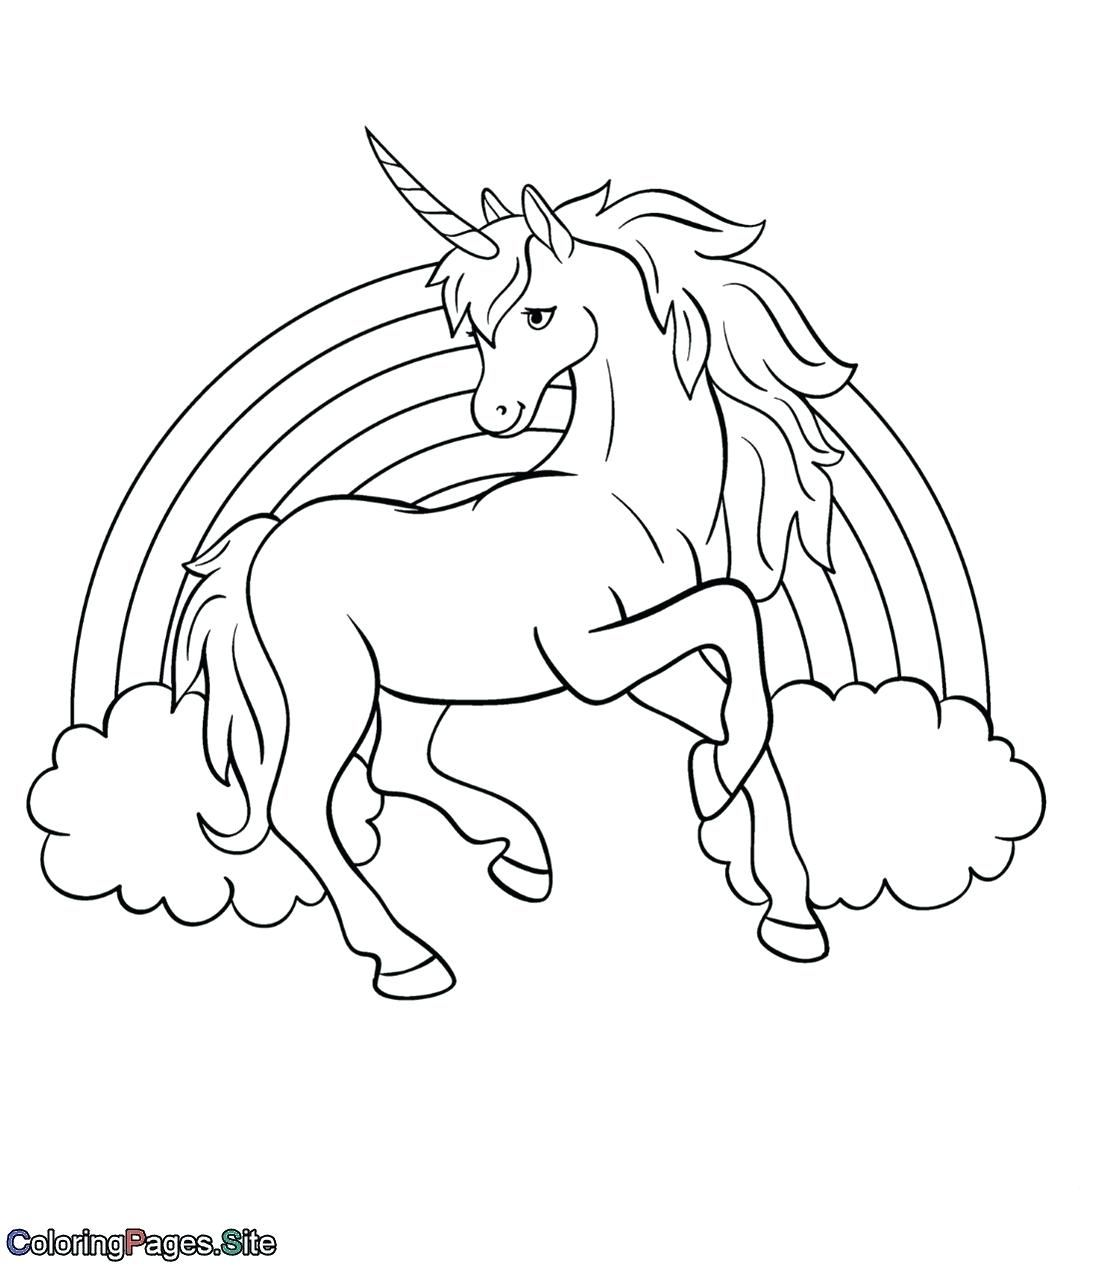 Unicorn Rainbow Printable Coloring Pages For Kids Unicorn